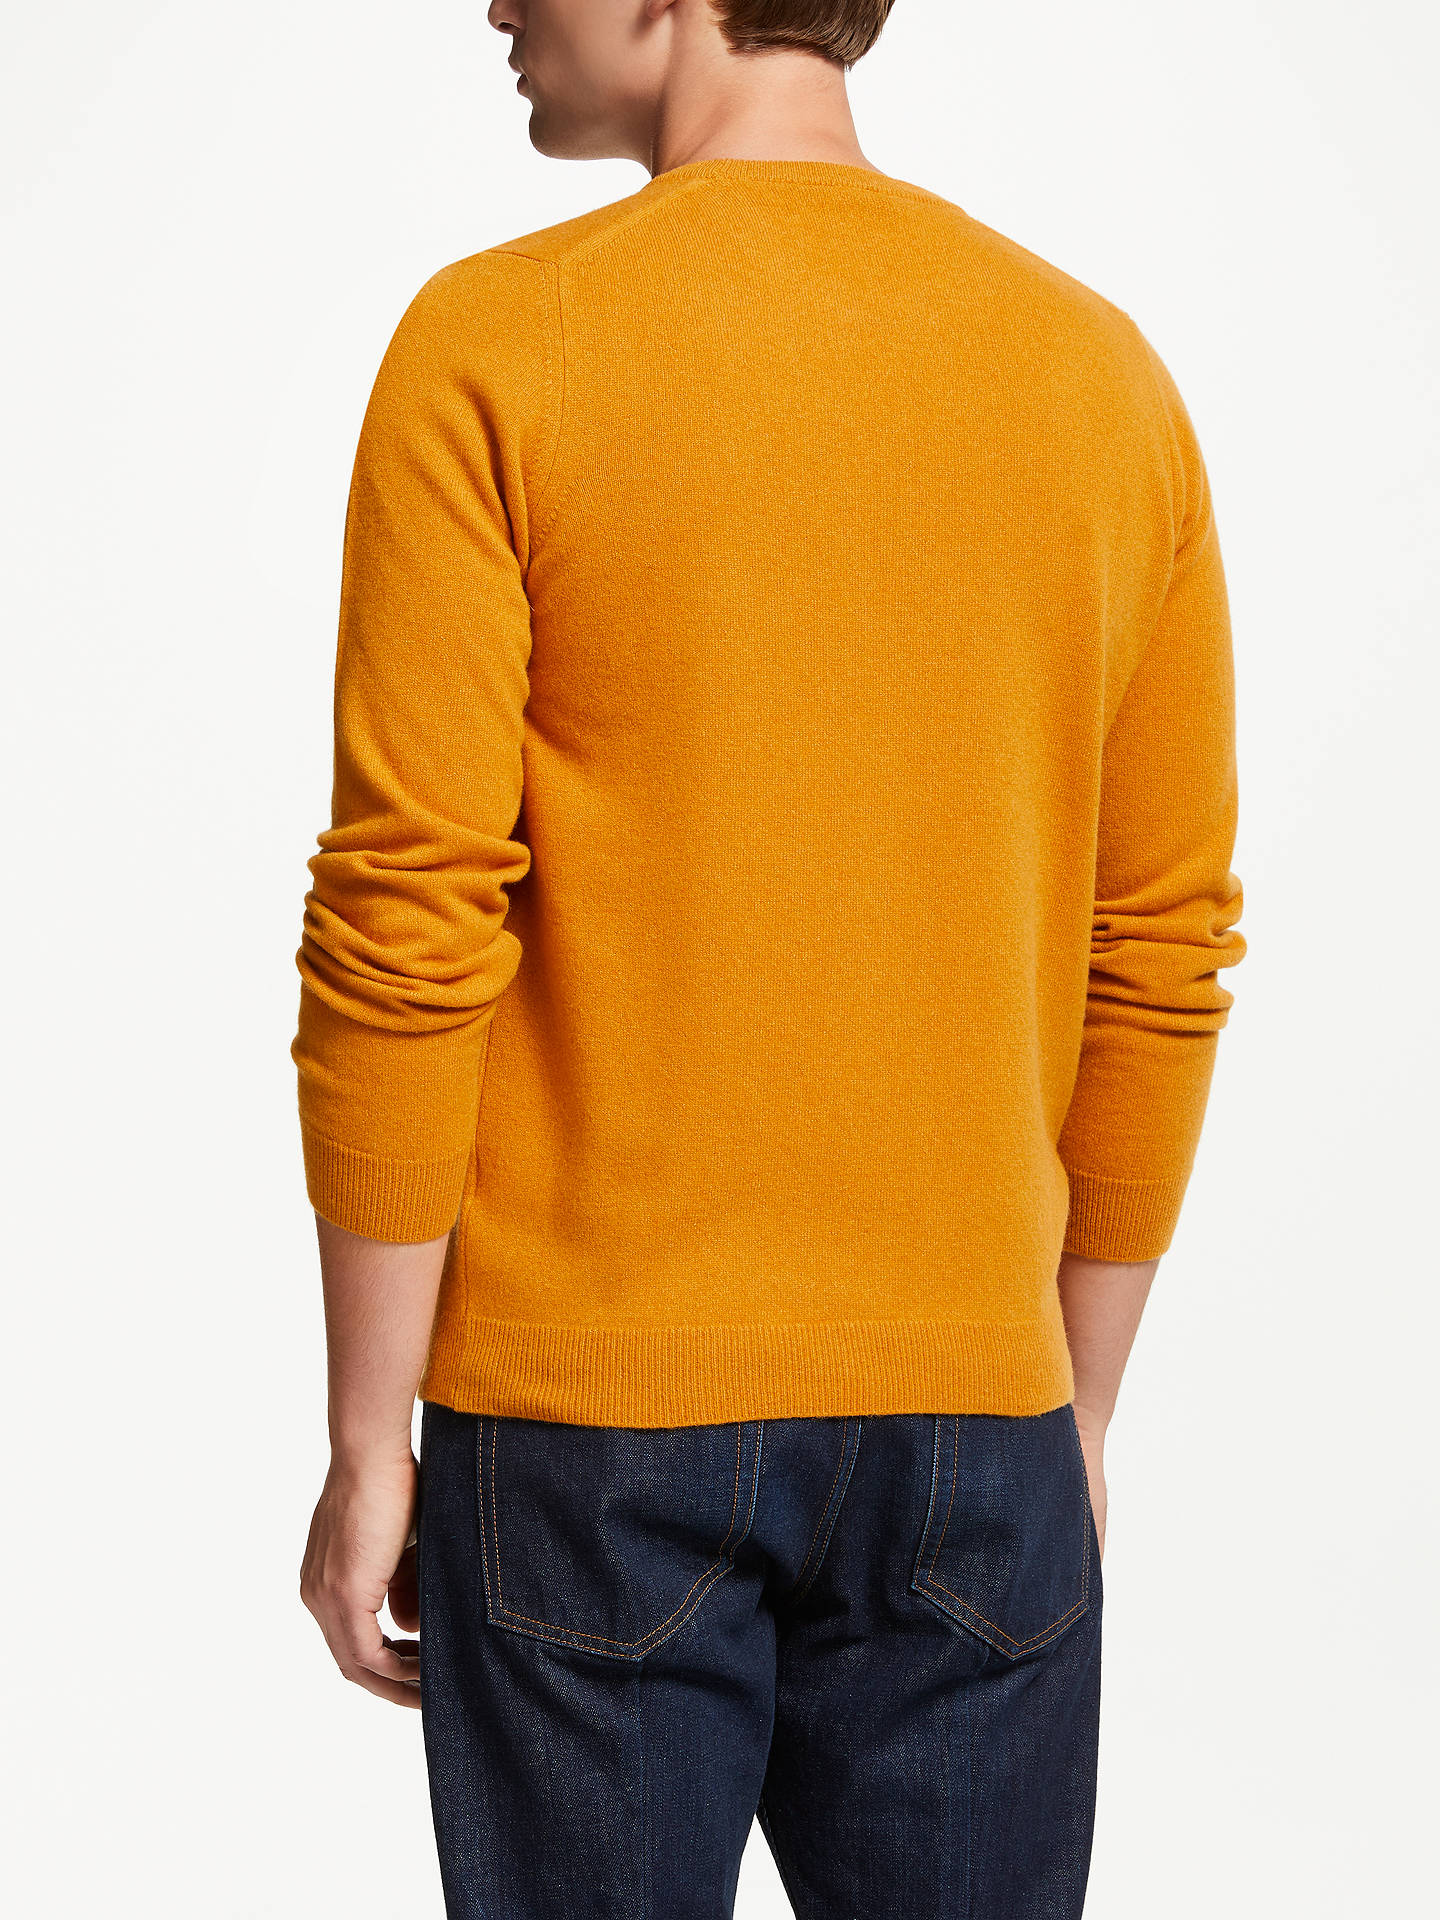 BuyJohn Lewis & Partners Italian Cashmere Crew Neck Jumper, Sunshine Yellow, L Online at johnlewis.com